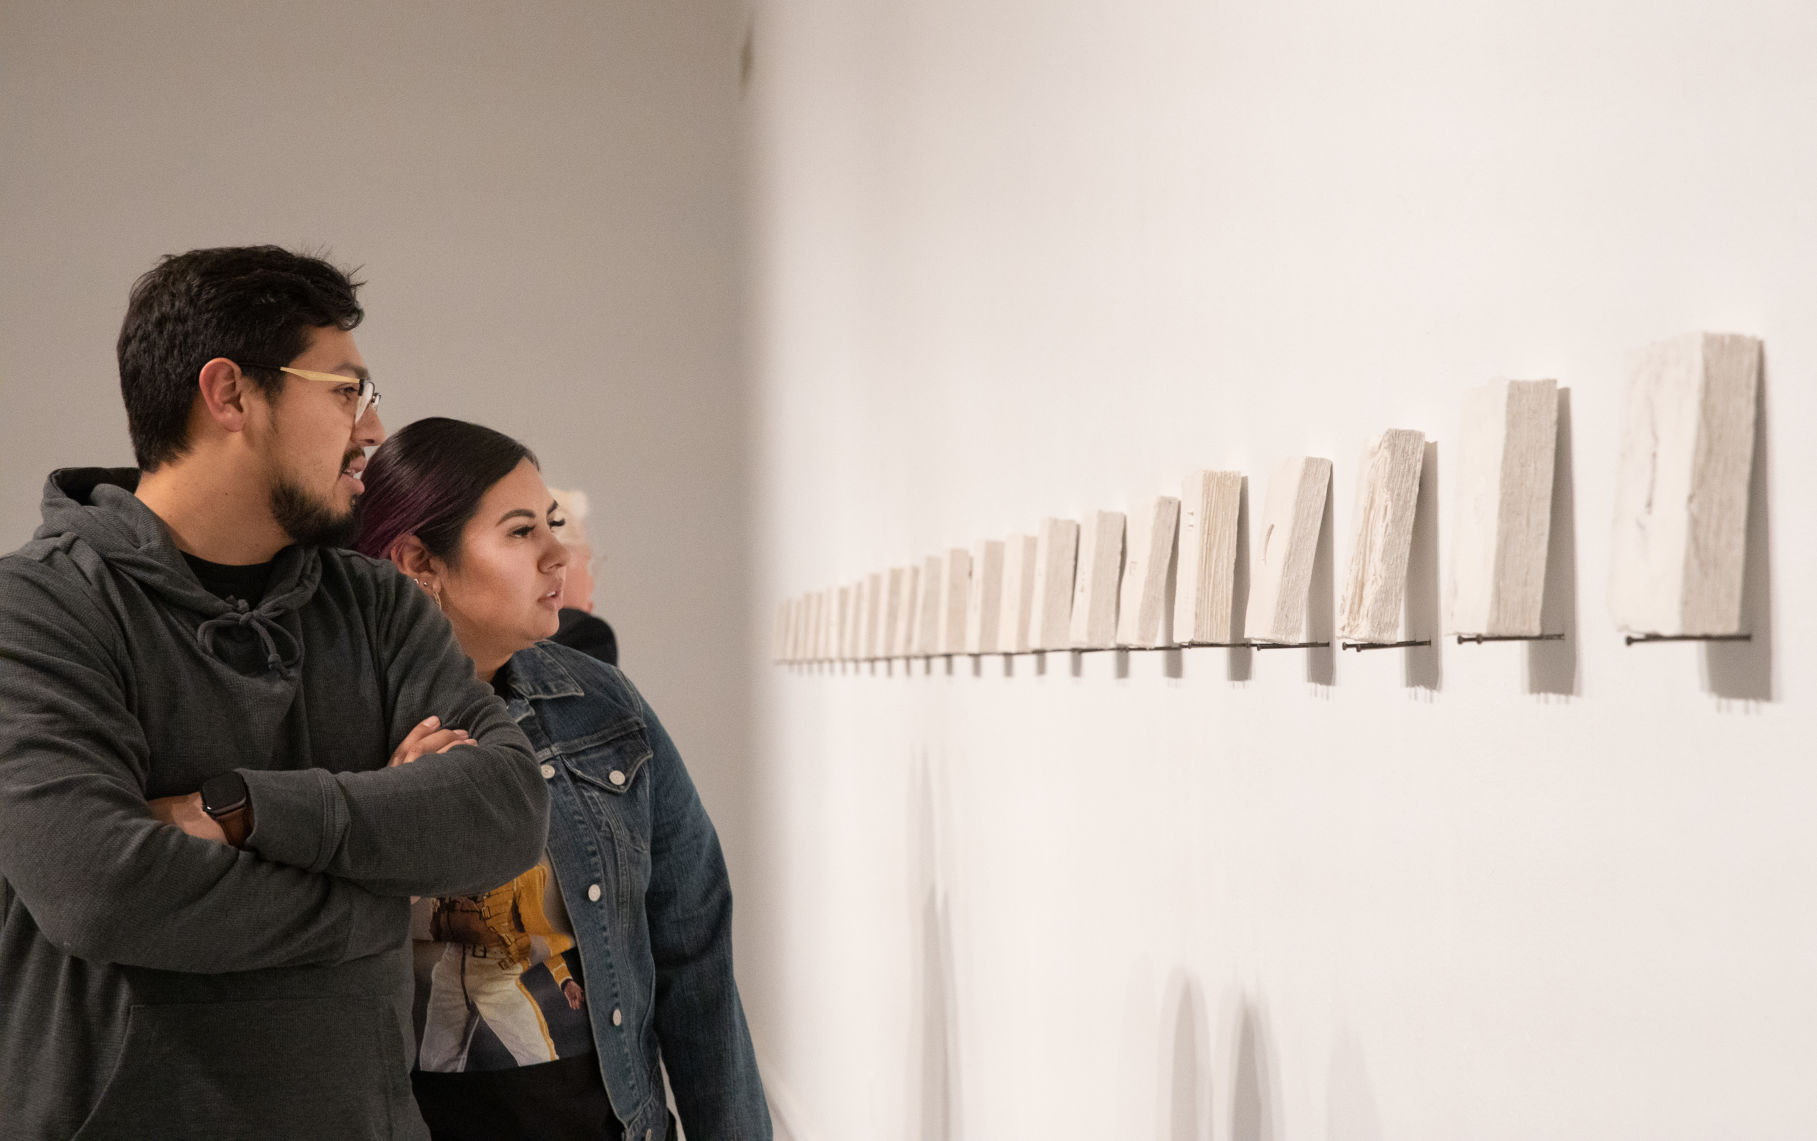 The Gallery at UTA hosts reception featuring 2 Texan artists from San Antonio, Ennis